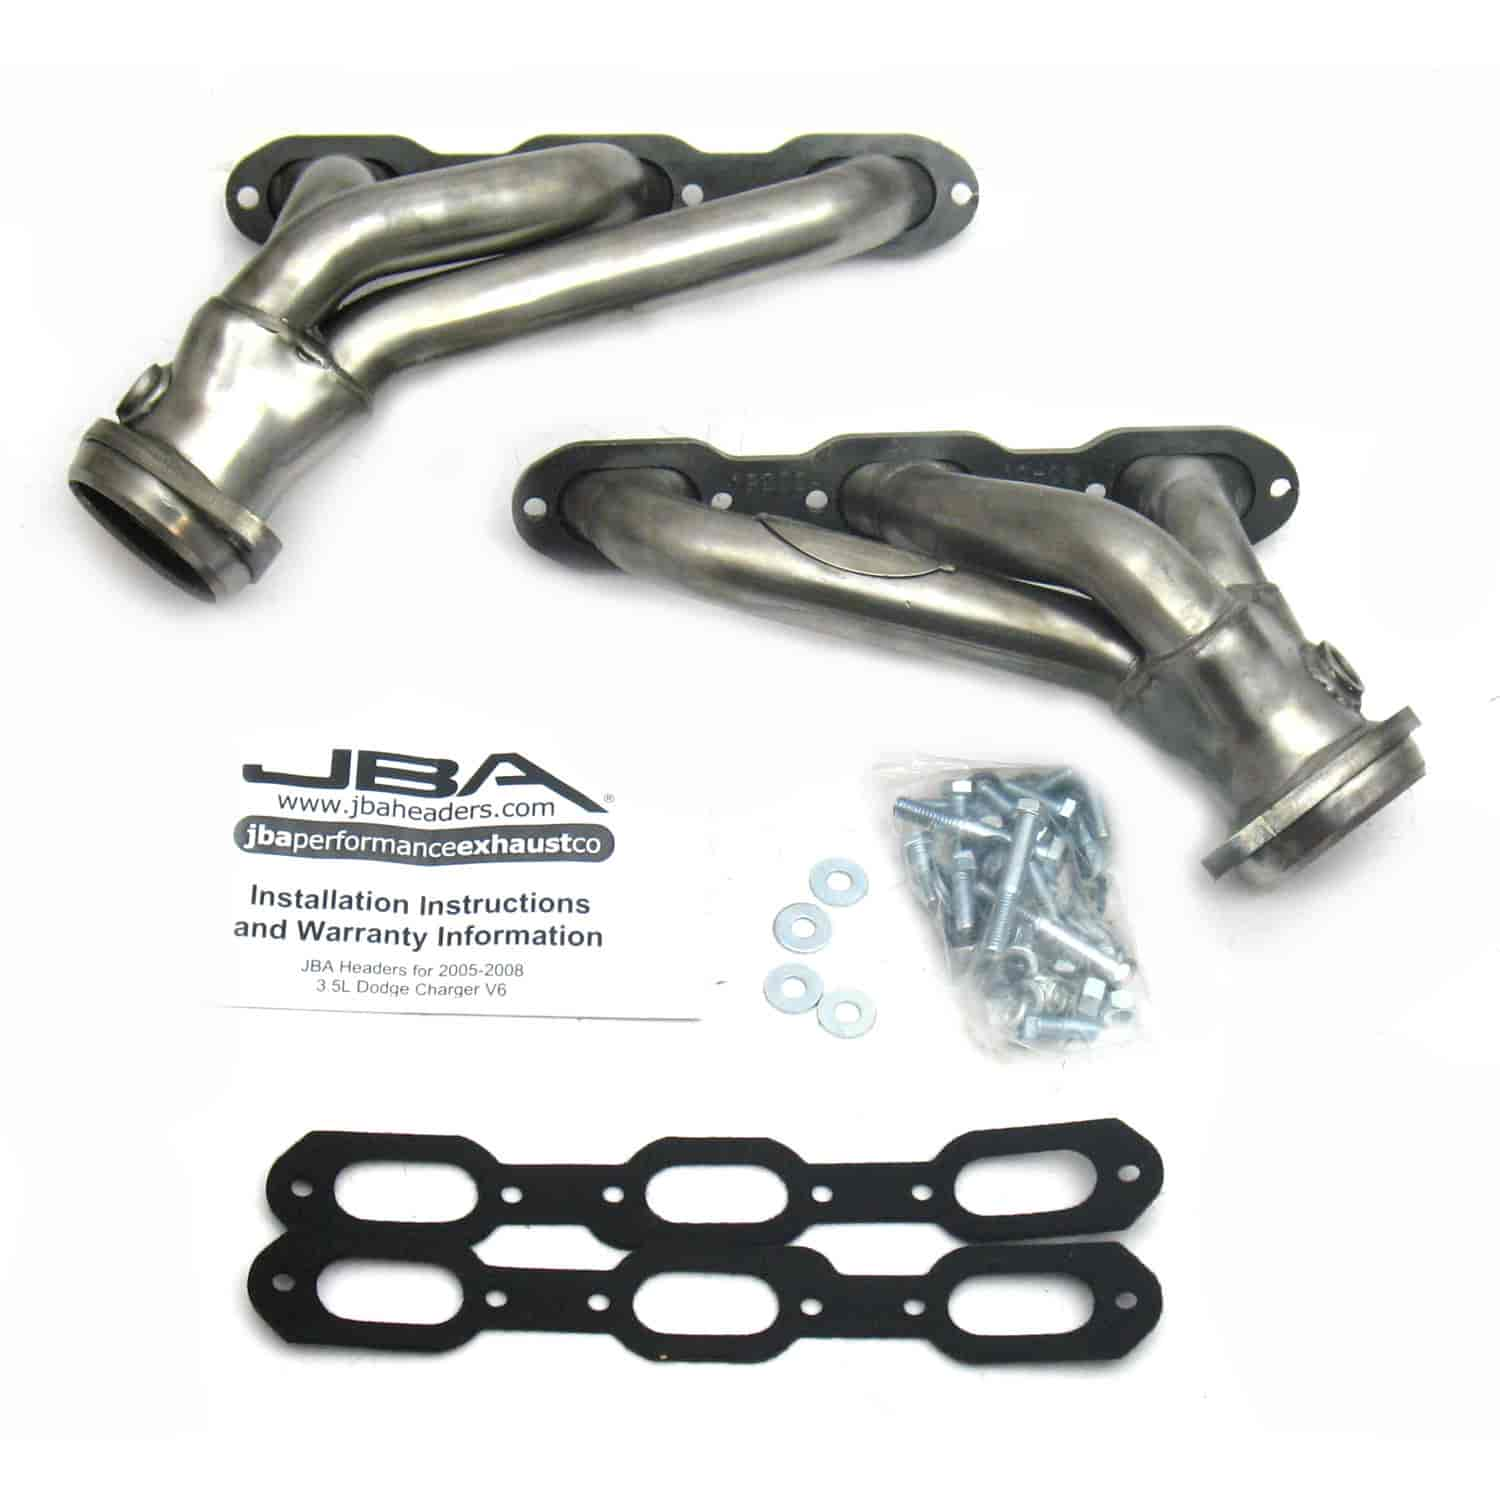 JBA 1920S - JBA Mopar Shorty Headers